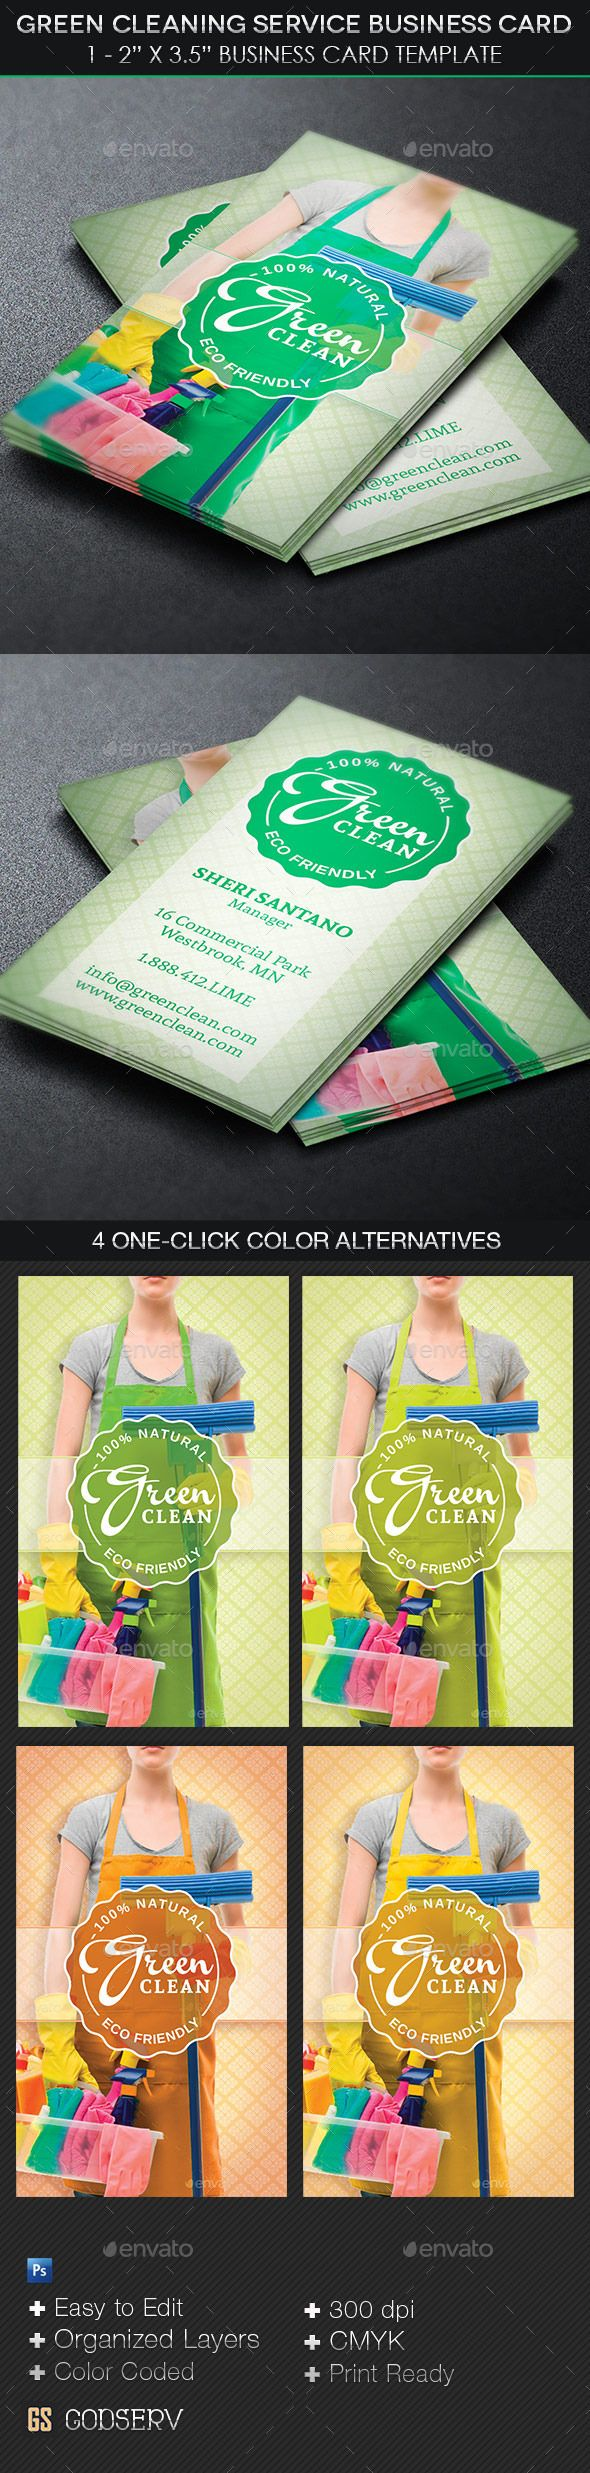 Cleaning services business cards cleaning services business cards cleaning services lady magicingreecefo Gallery